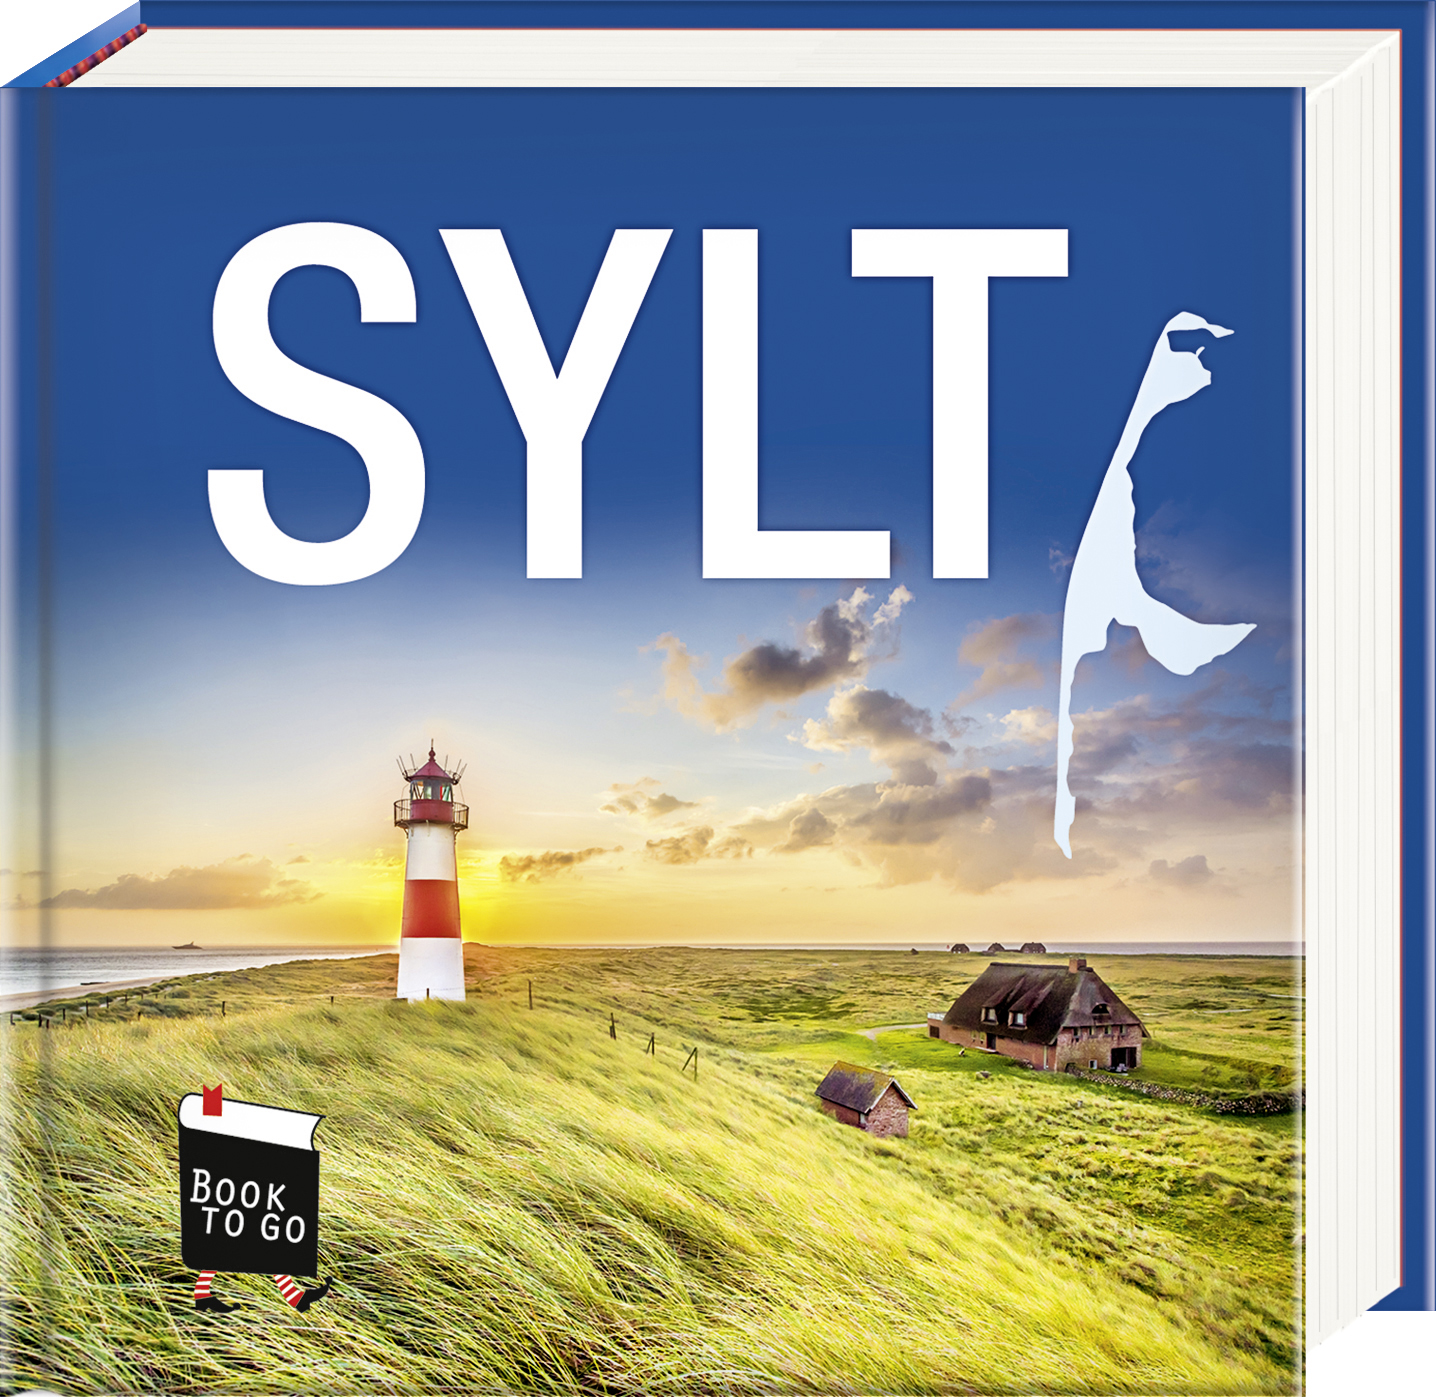 Sylt_Book_to_Go_3DJlCyaYQwDjX17